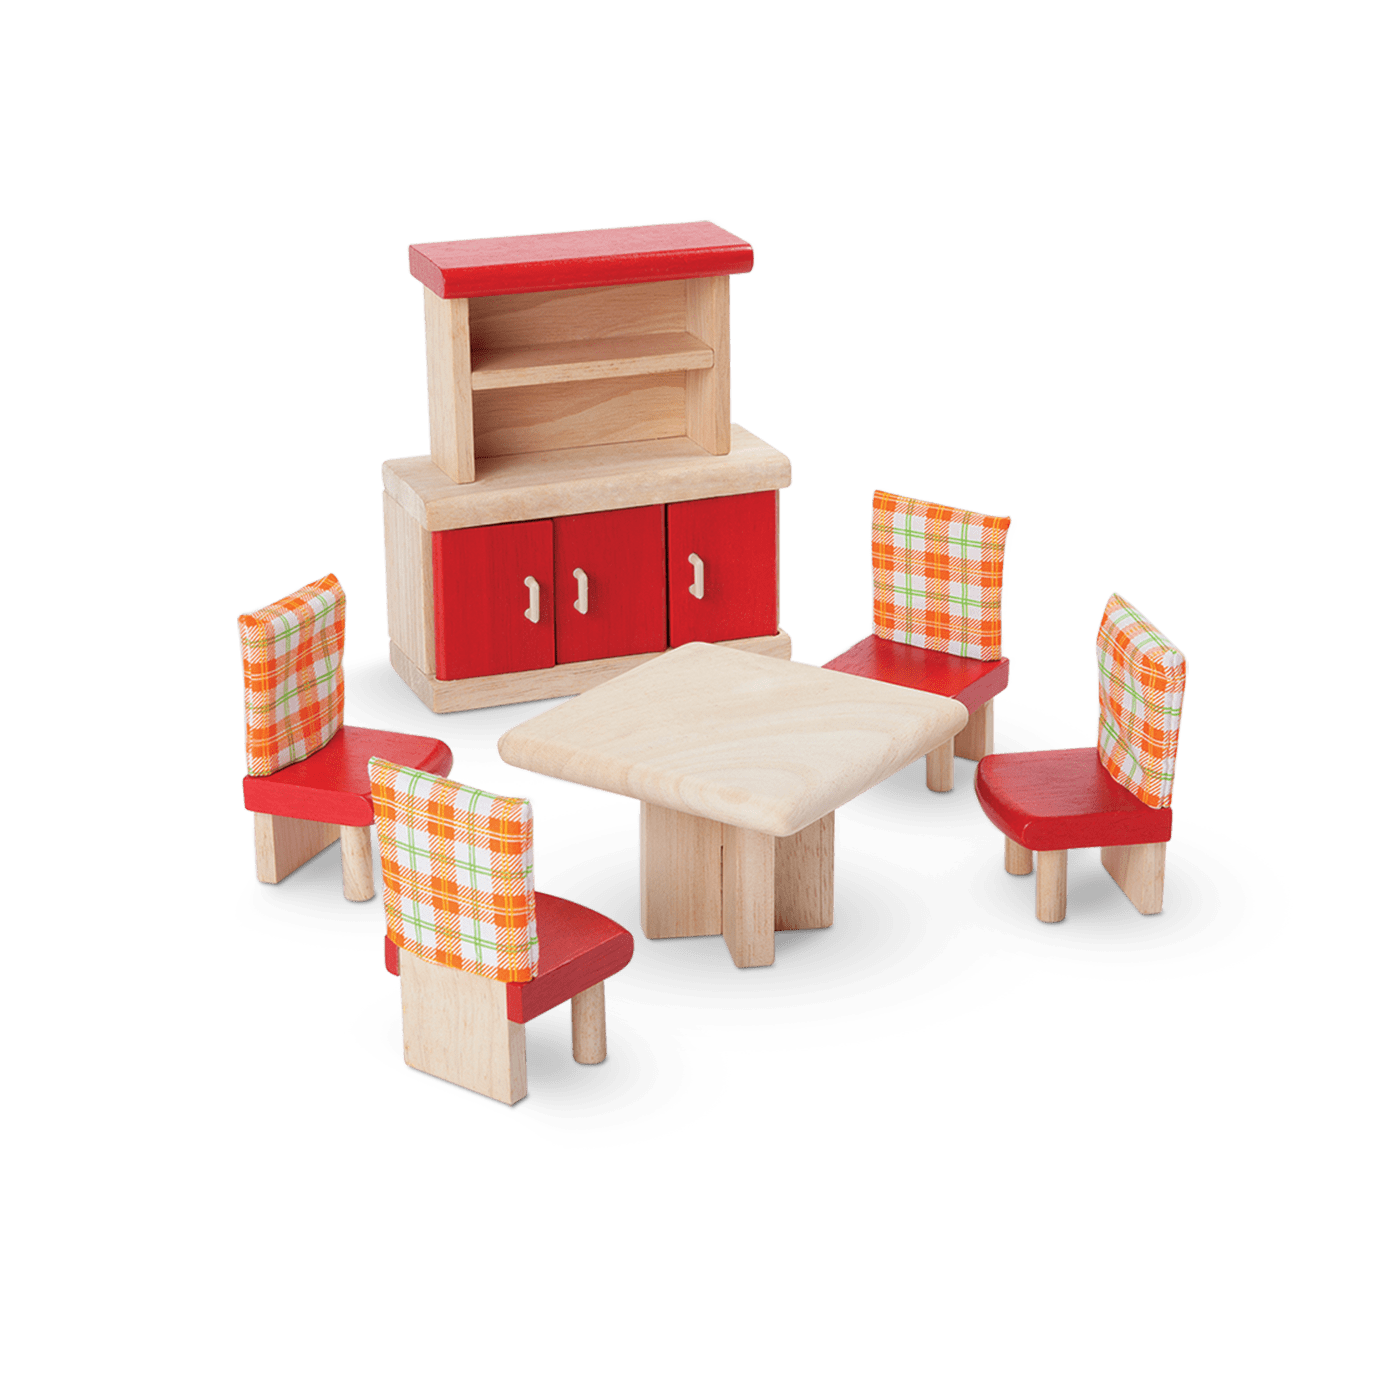 7306_PlanToys_DINING_ROOM_Pretend_Play_Imagination_Coordination_Language_and_Communications_Social_Fine_Motor_3yrs_Wooden_toys_Education_toys_Safety_Toys_Non-toxic_0.png